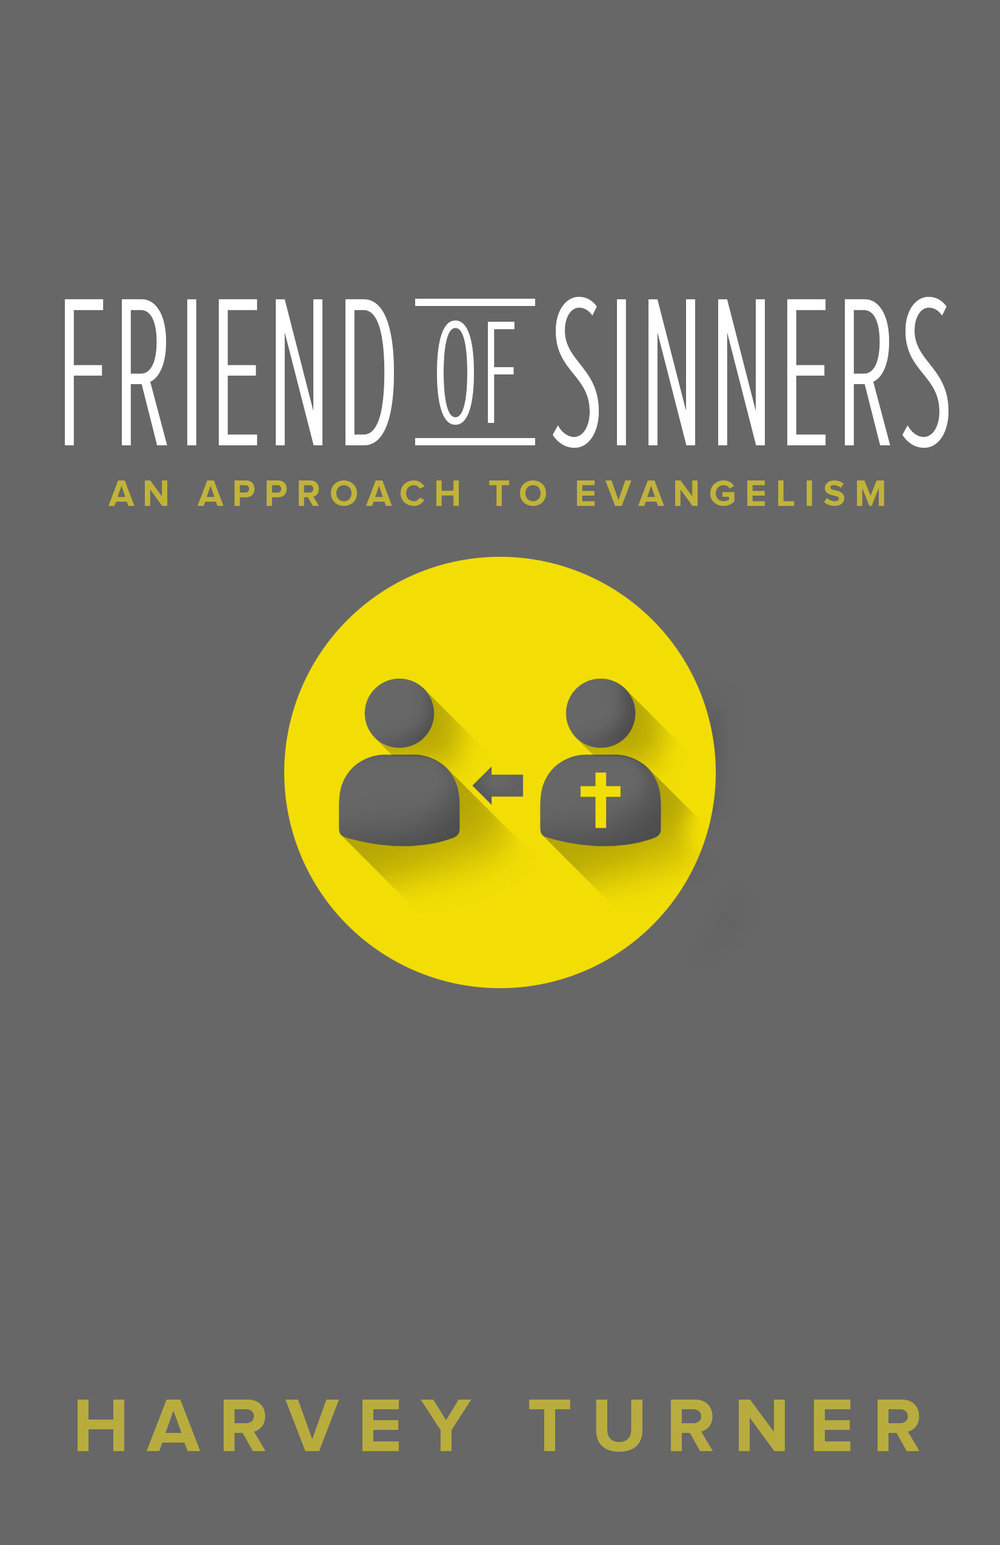 Friend of Sinners d14.jpg